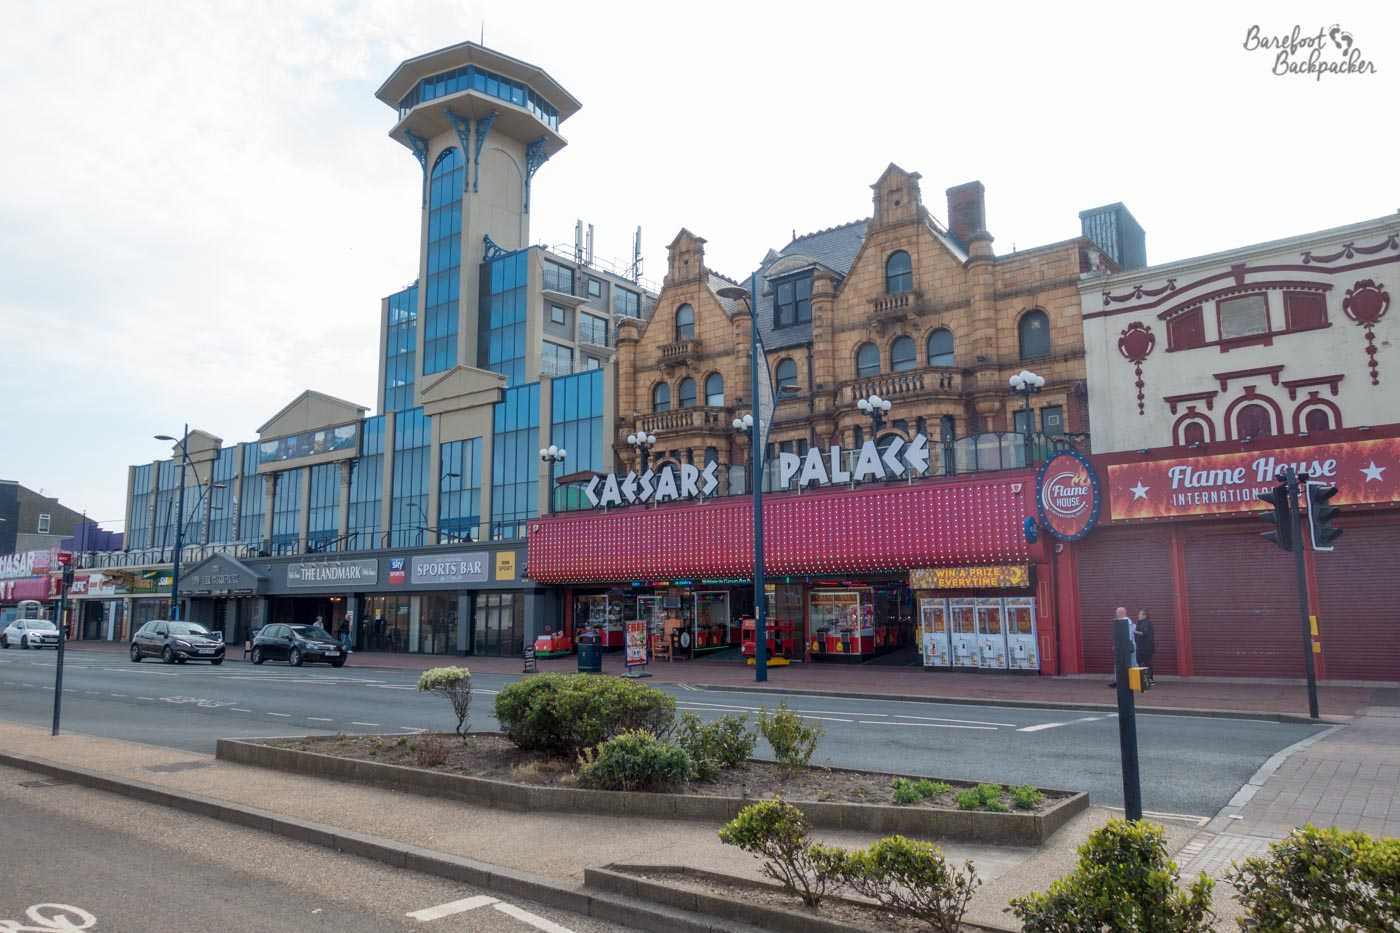 Great Yarmouth Promenade. A pub with a modern look stands next to a Victorian brick building called 'Caesar's Palace', serving as a garish amusement arcade, with a closed restaurant called 'Flame House' next to that.